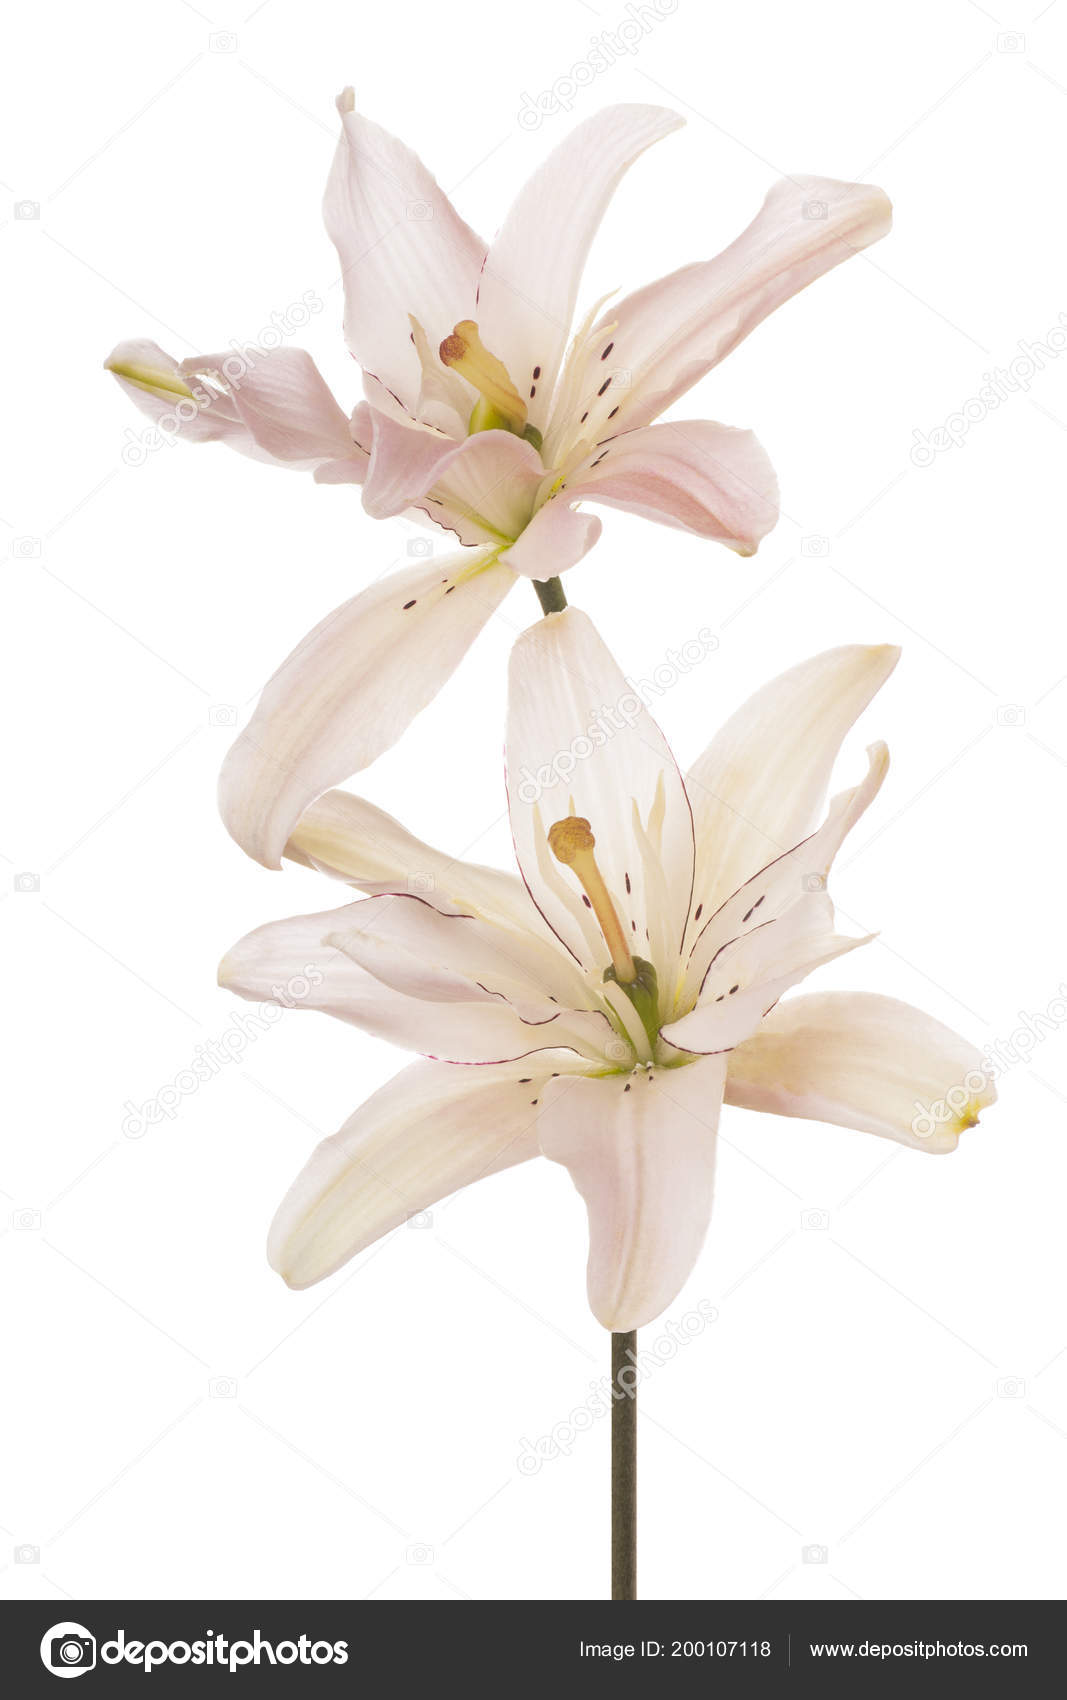 Studio shot pink colored lily flowers isolated white background studio shot pink colored lily flowers isolated white background large stock photo mightylinksfo